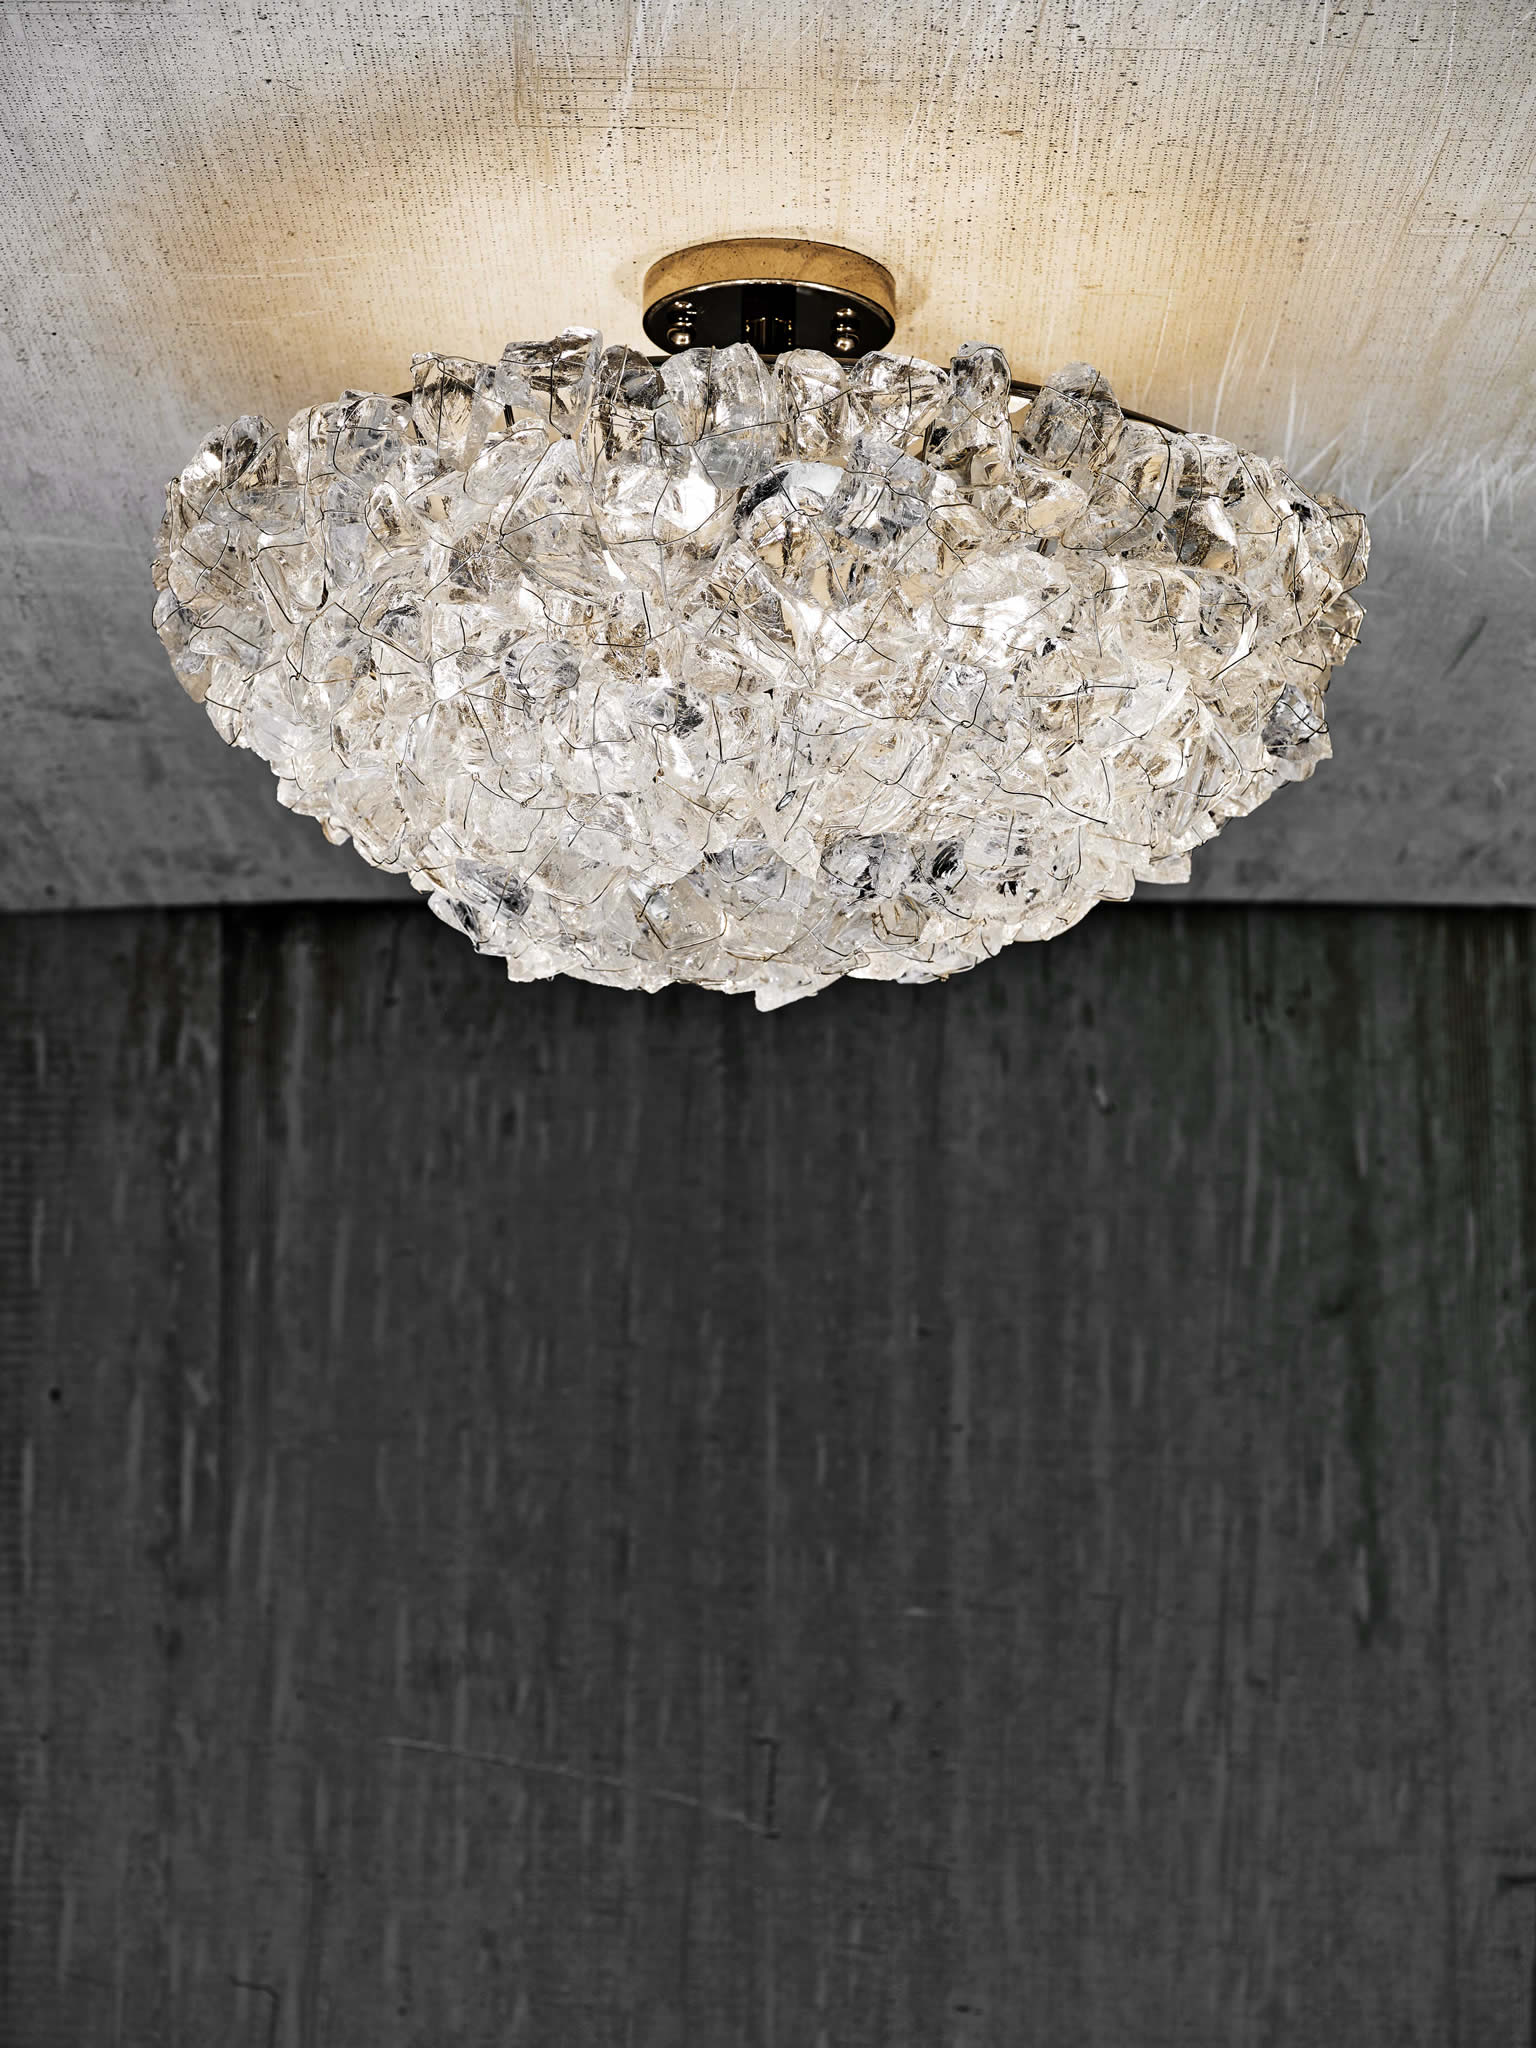 Cl sterling son rock crystal ceiling fixture for The sterling